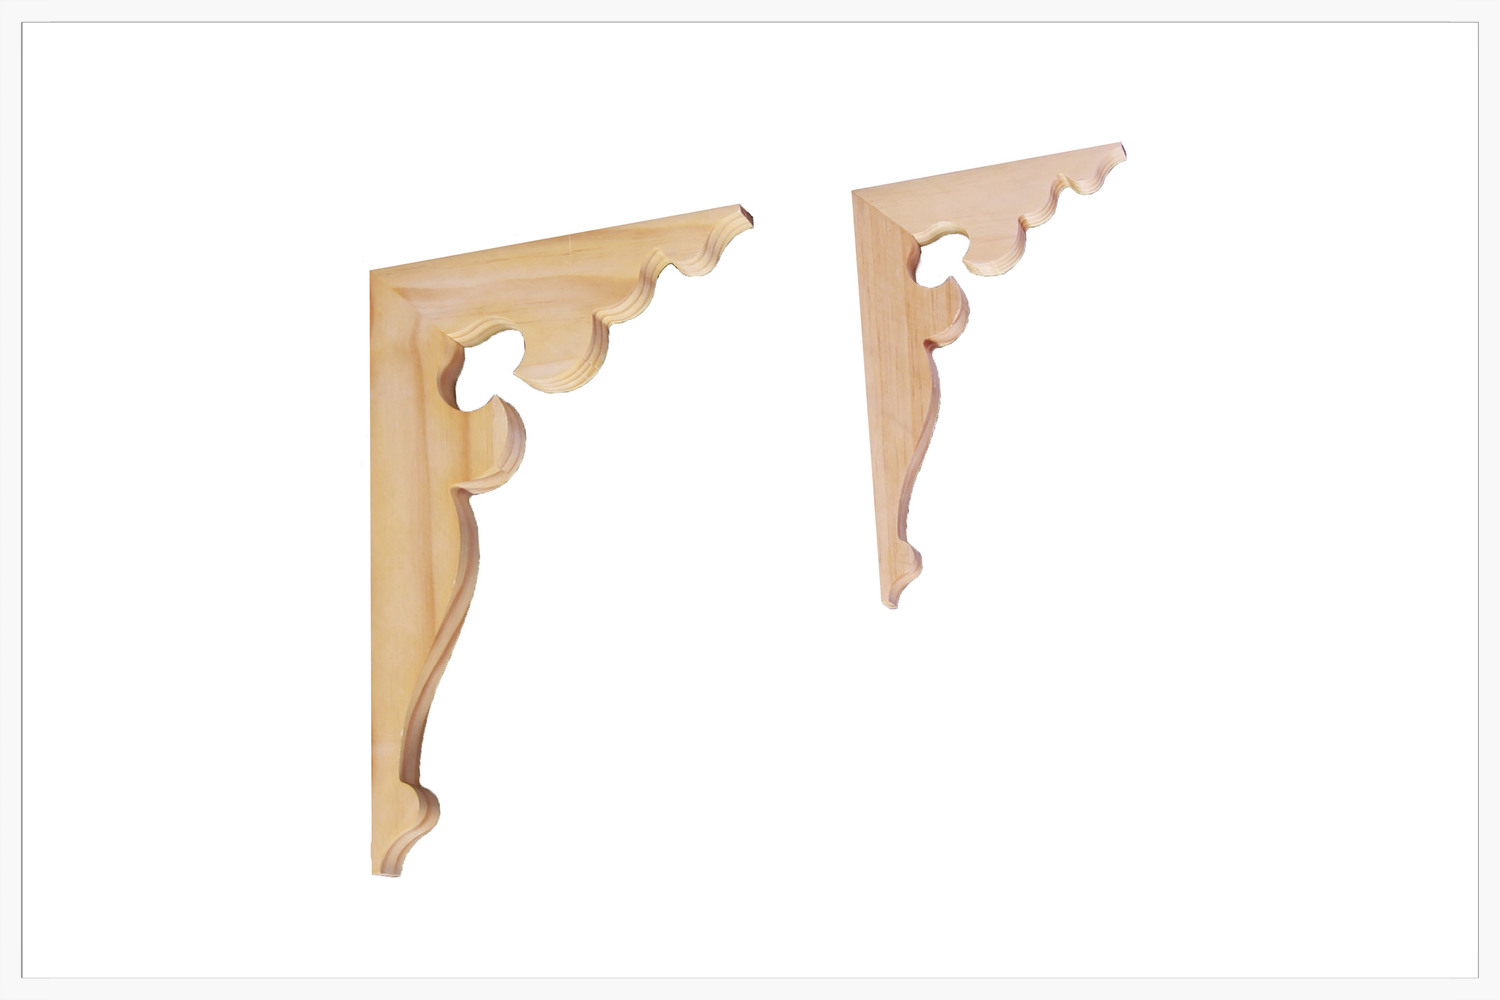 Corner Brackets (3 Sizes)    Product Code:  CB-11, CB-11S, CB-11ES  Thickness:  32  Dimensions:  300 x 460 mm, 325 x 325 mm, 190 x 150 mm RESPECTIVELY